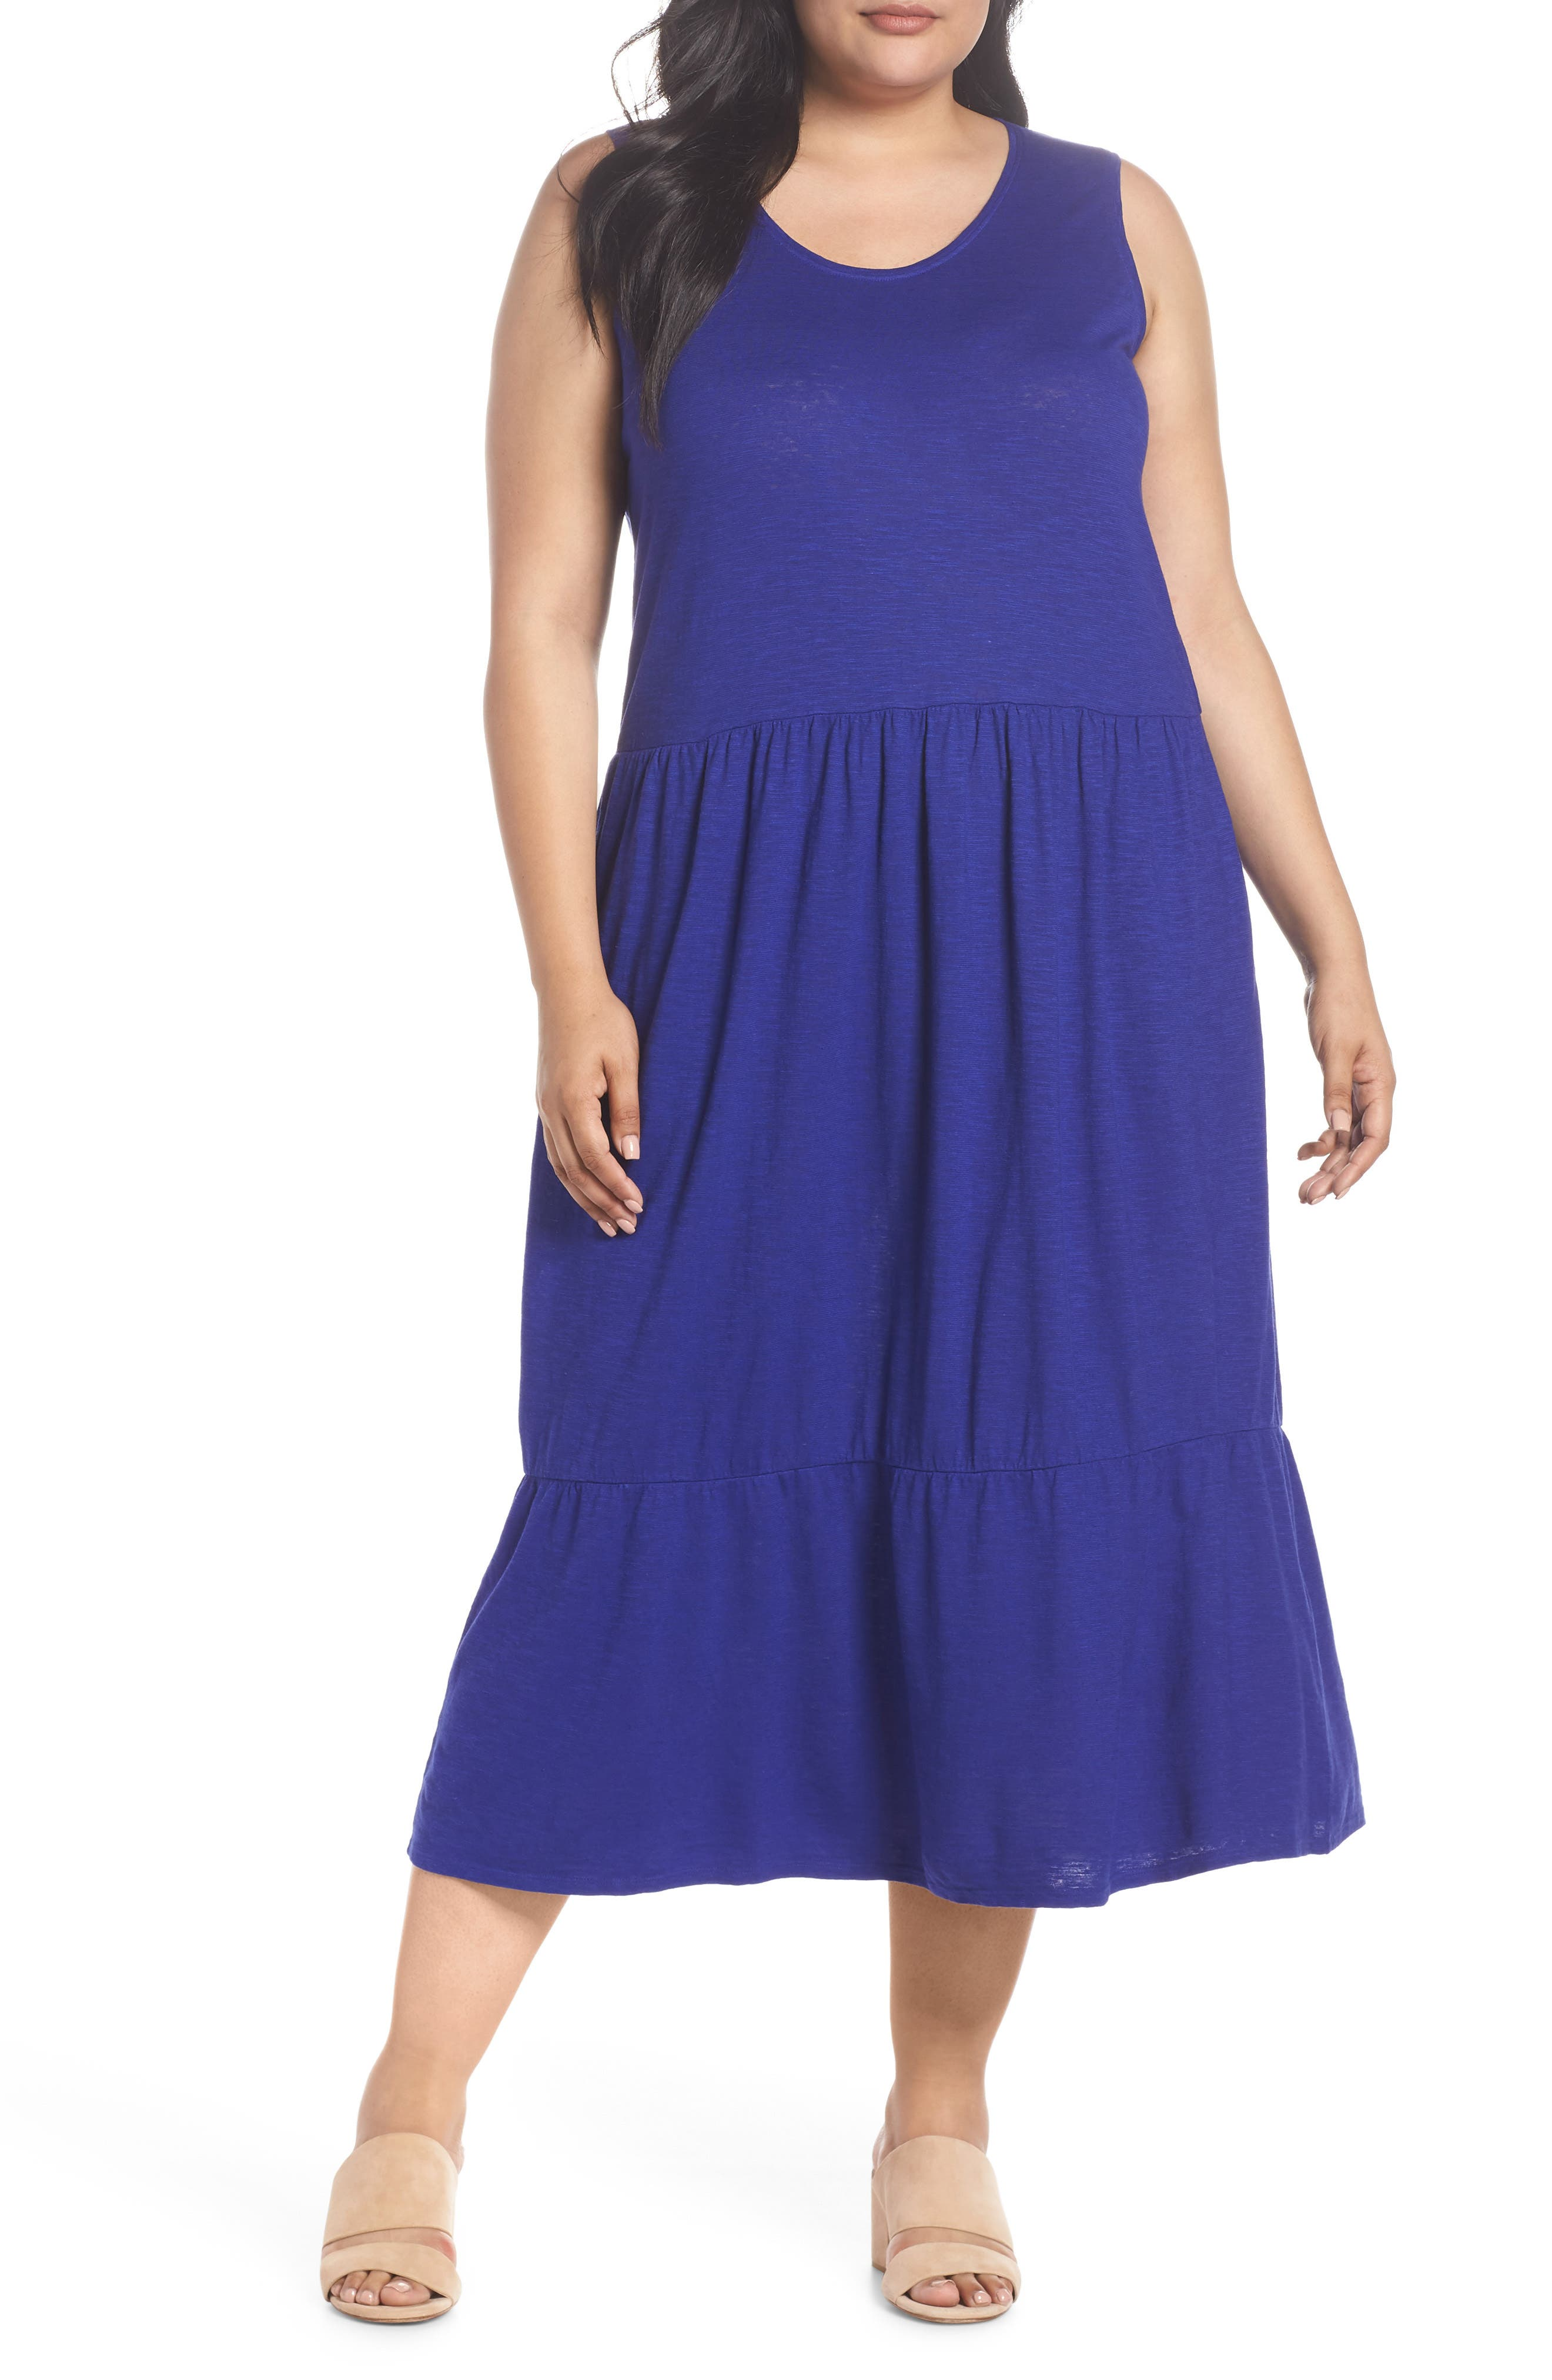 Scooped Neck Hemp & Cotton Midi Dress,                             Main thumbnail 1, color,                             BLUE VIOLET